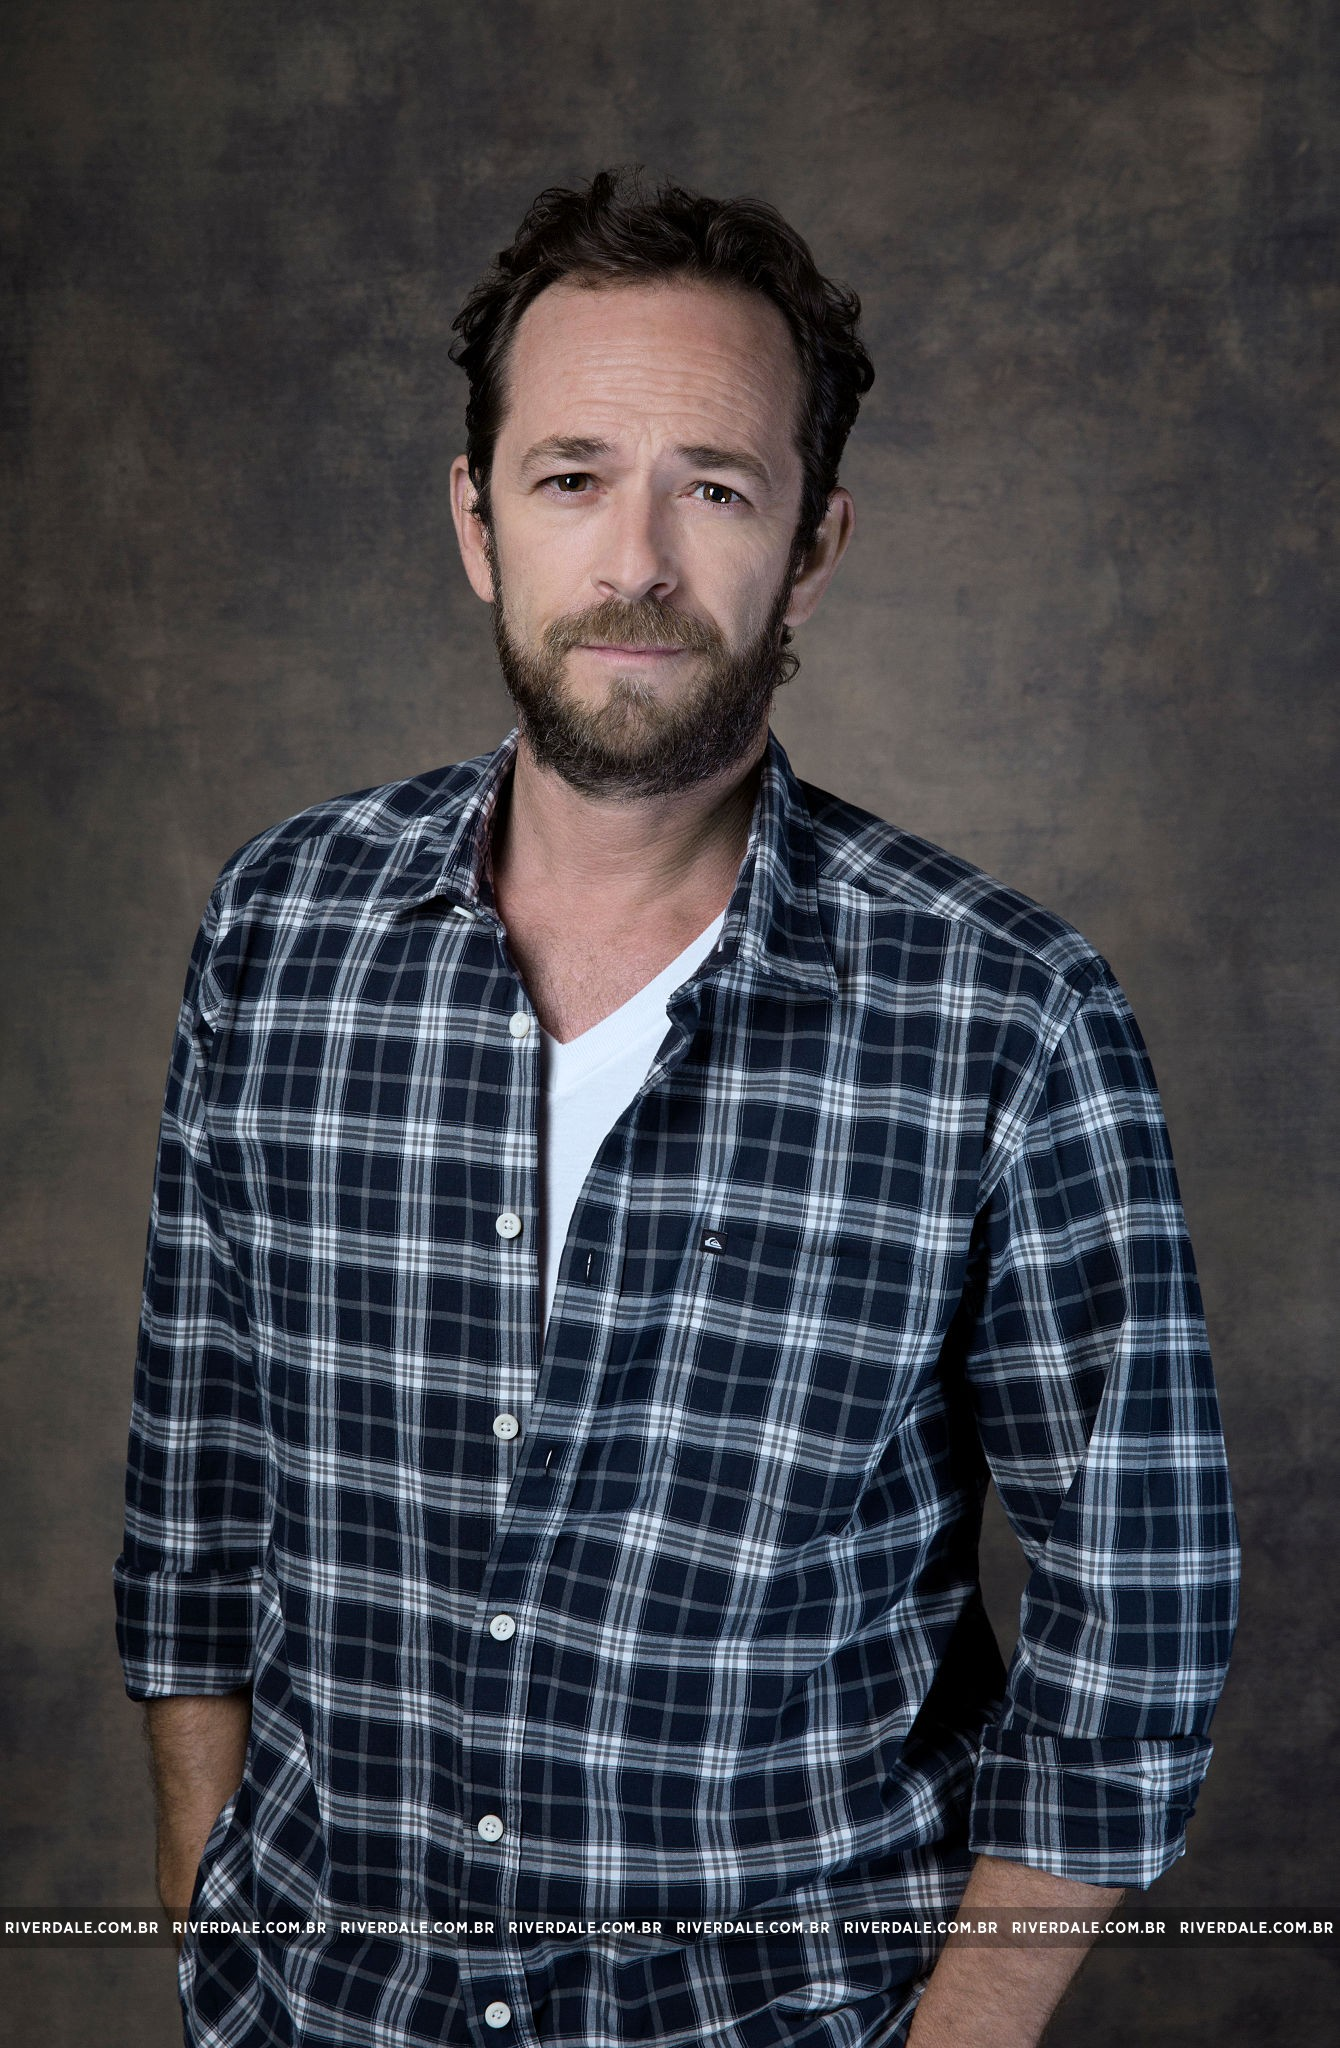 Luke Perry - LA Times Portrait Studio